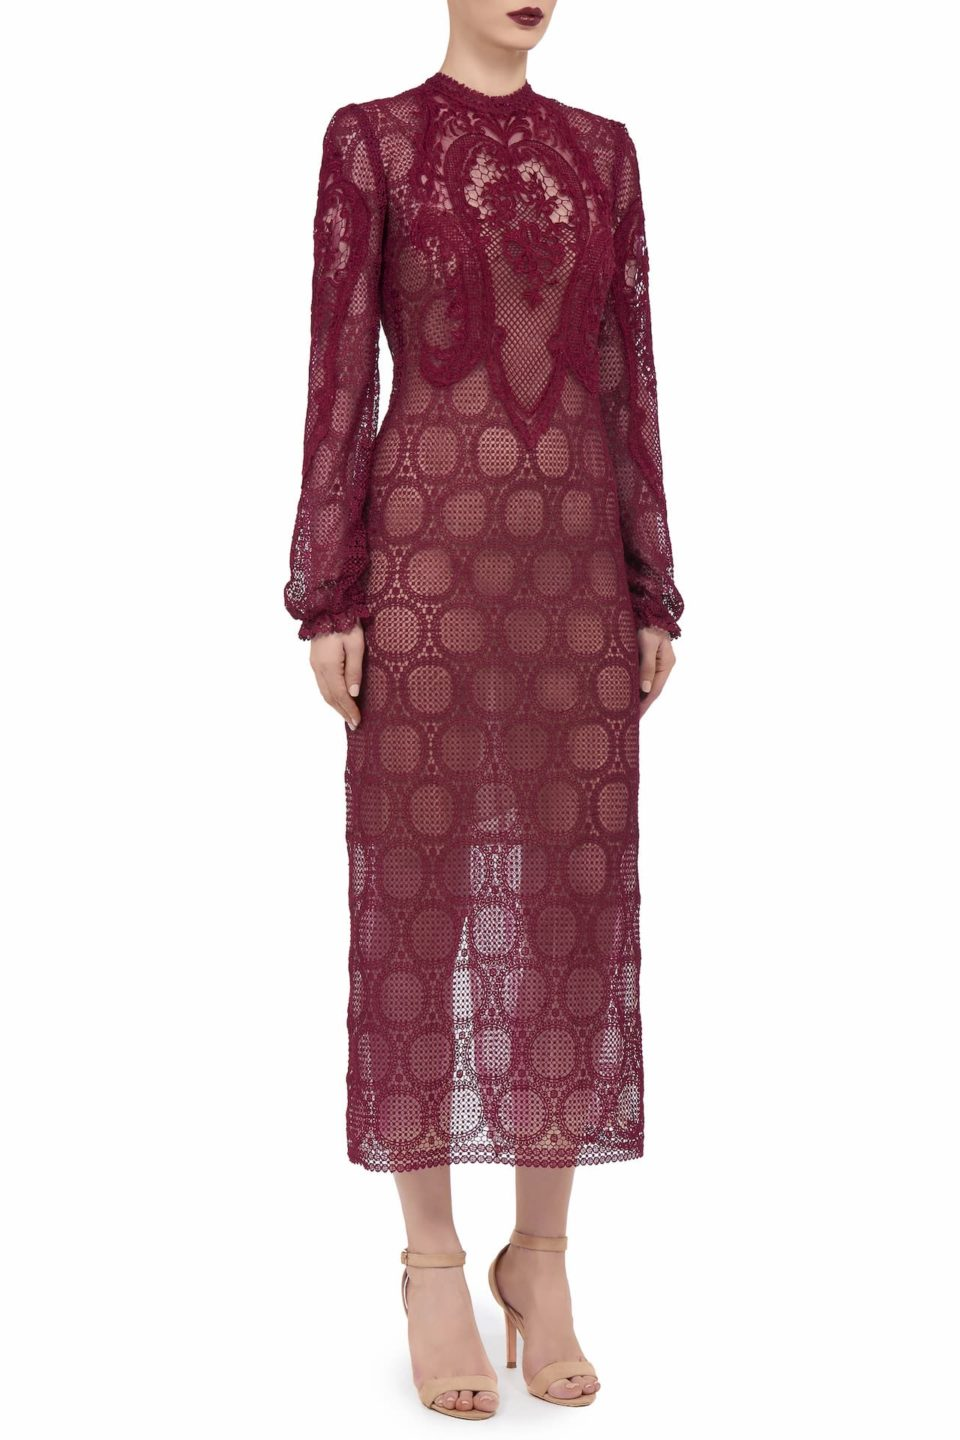 Denna FW2060 red Victorian Cordone Lace Sheath Dress with Mock-Neckline